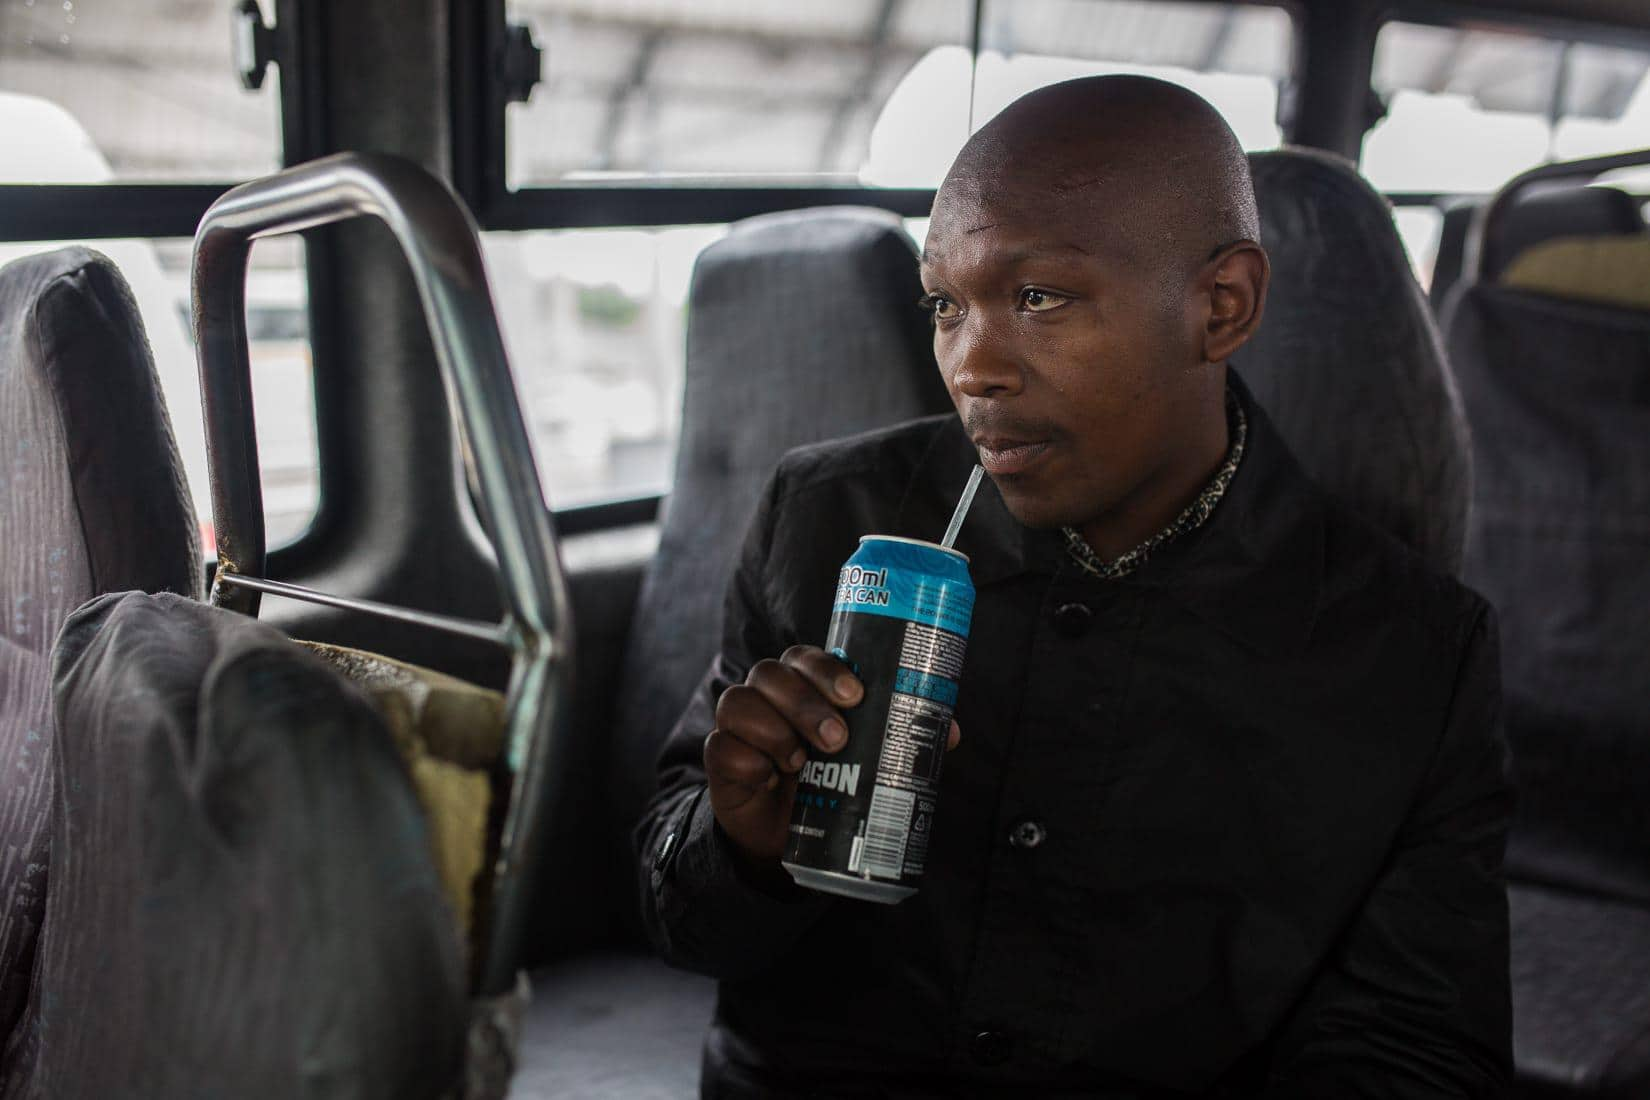 Taxi drivers fueled by caffeine and sugar | Health-e thumbnail